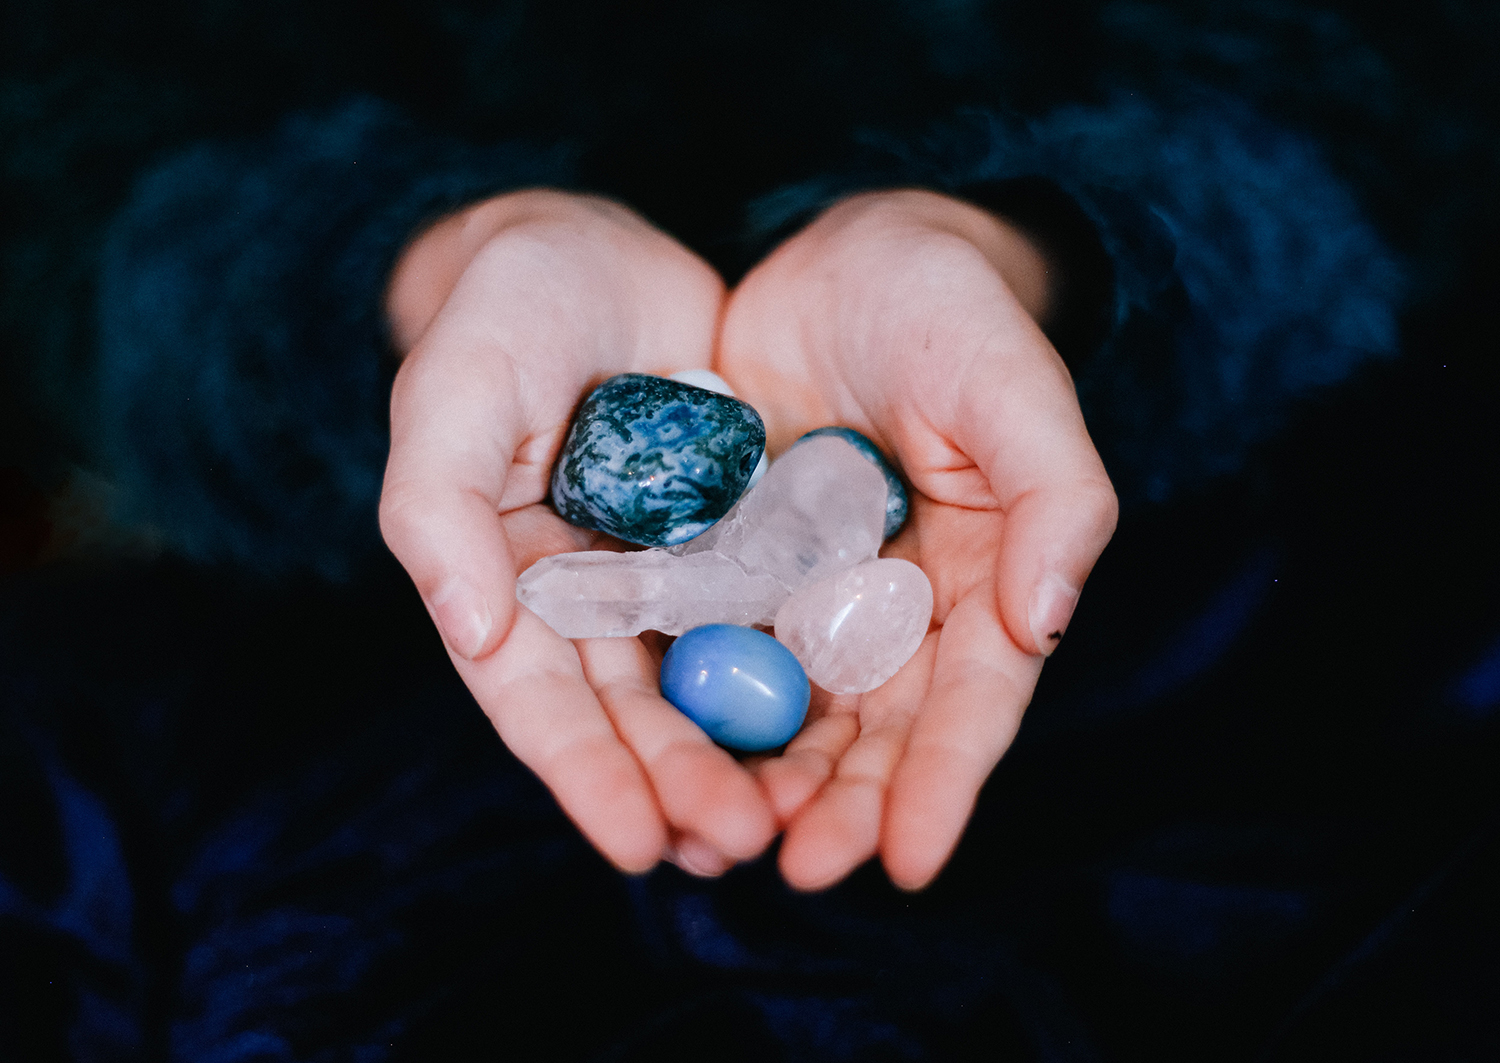 Gemstones can be incorporated into our lives in a variety of ways.